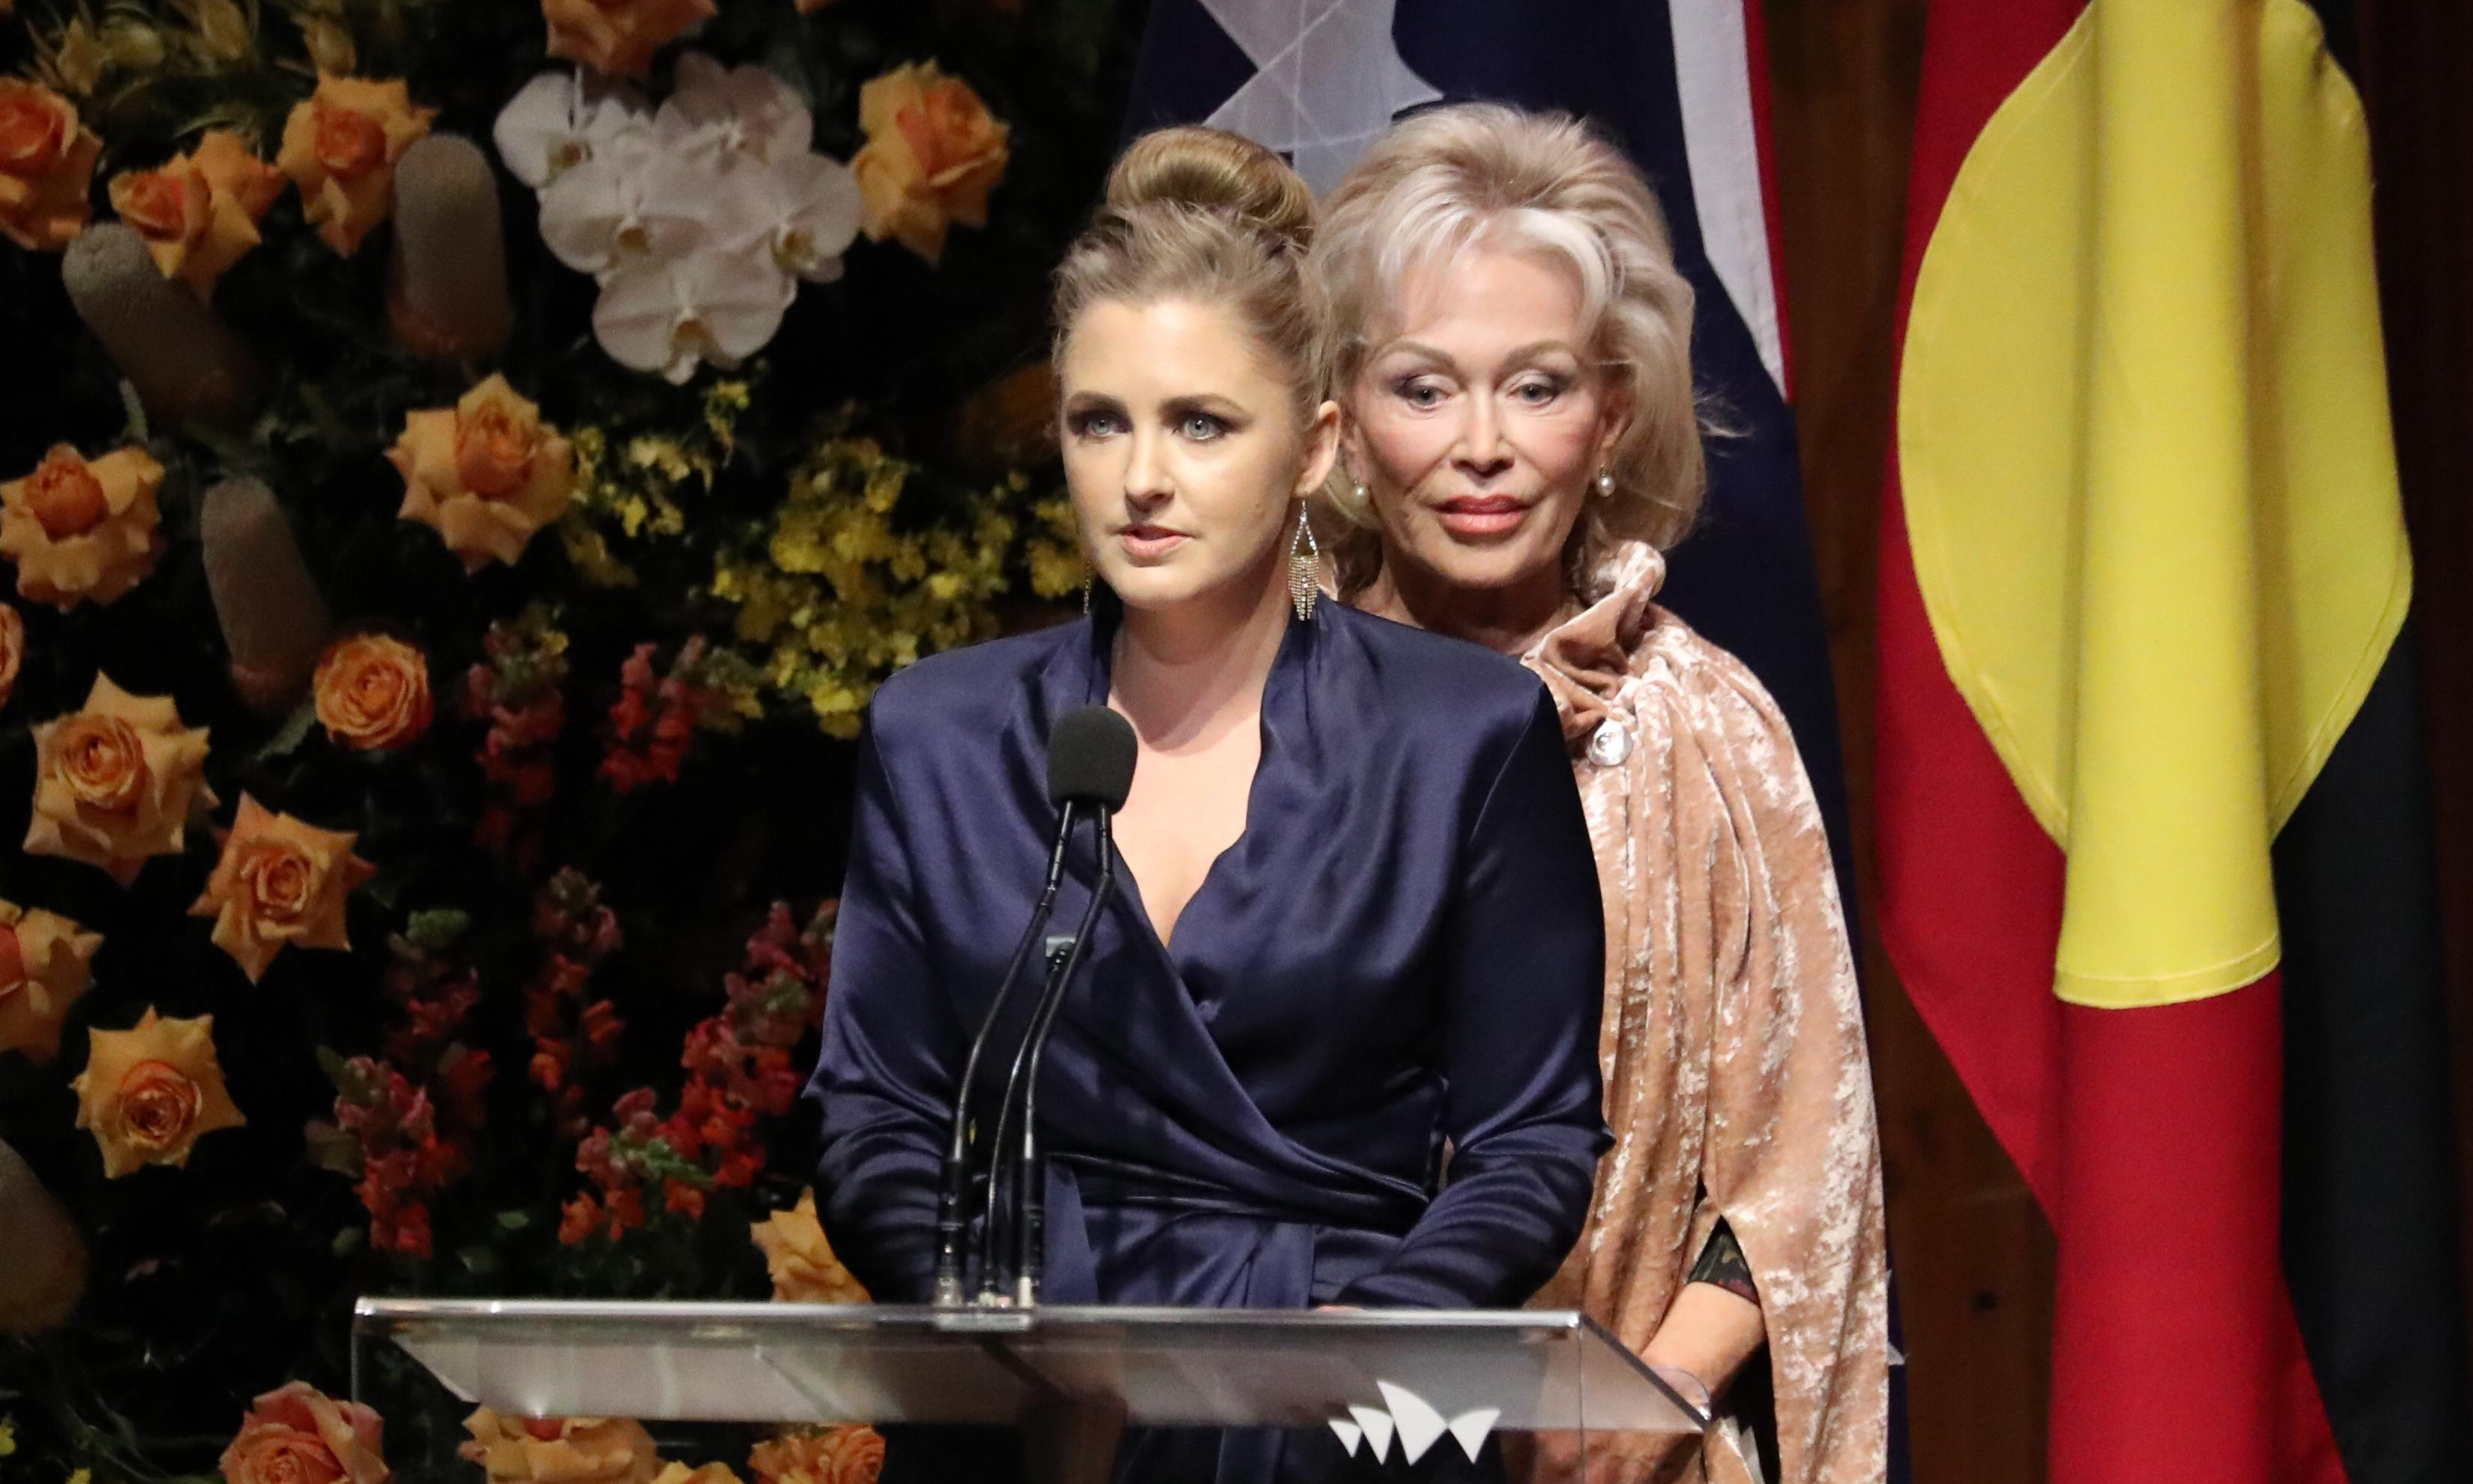 'He implored us take action on climate': Sophie Taylor-Price's tribute to her grandfather, Bob Hawke - in full